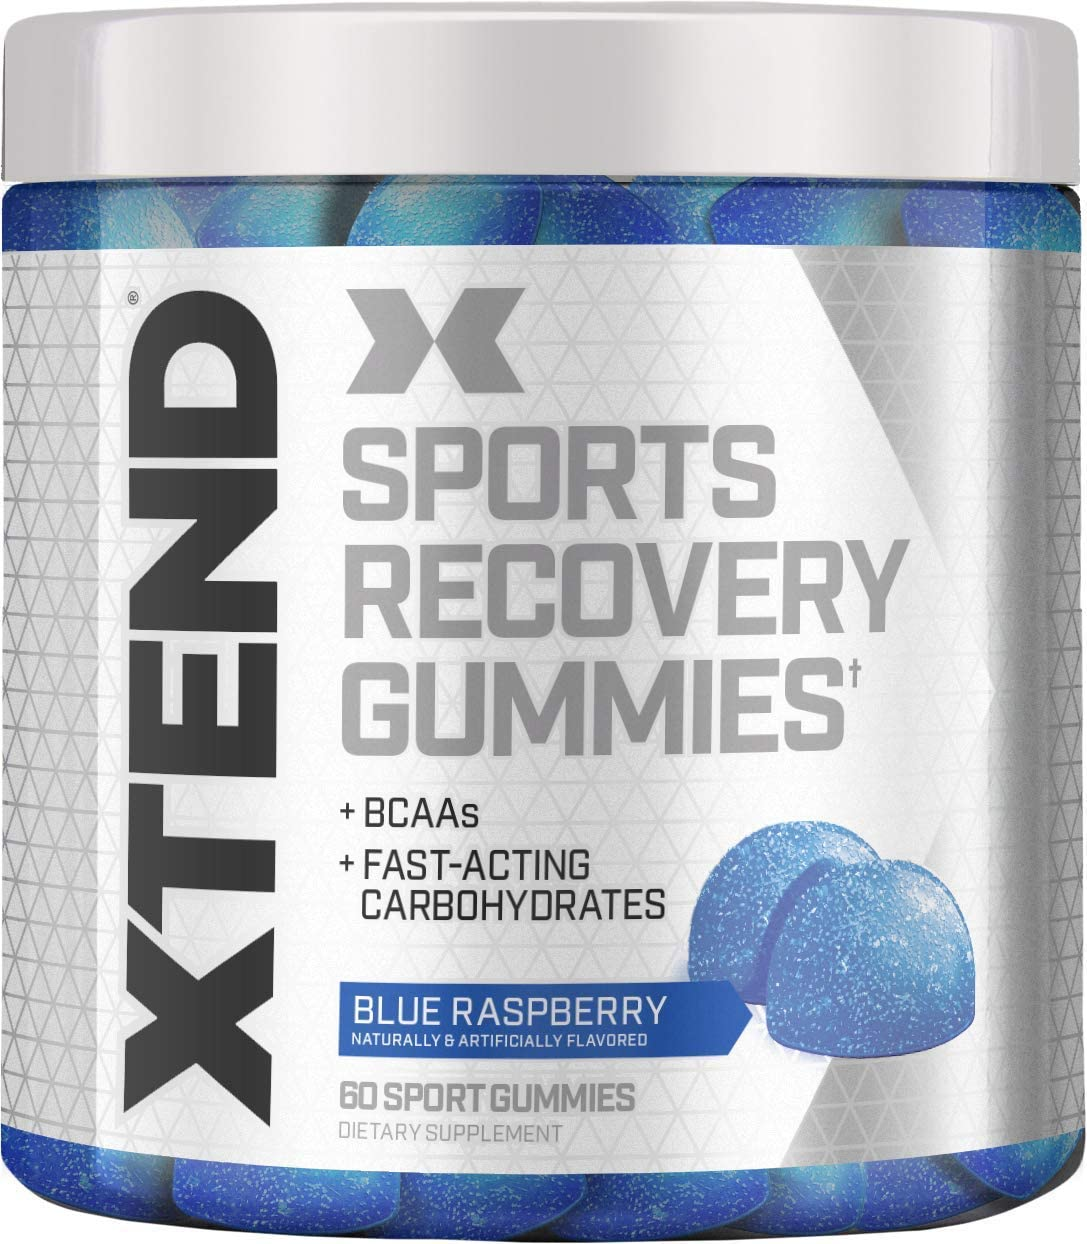 XTEND Sports Recovery Gummies with 3.5g Branched Chain Amino Acids, BCAAs Fast-Acting Carbohydrates, Blue Raspberry, 60 Gummies